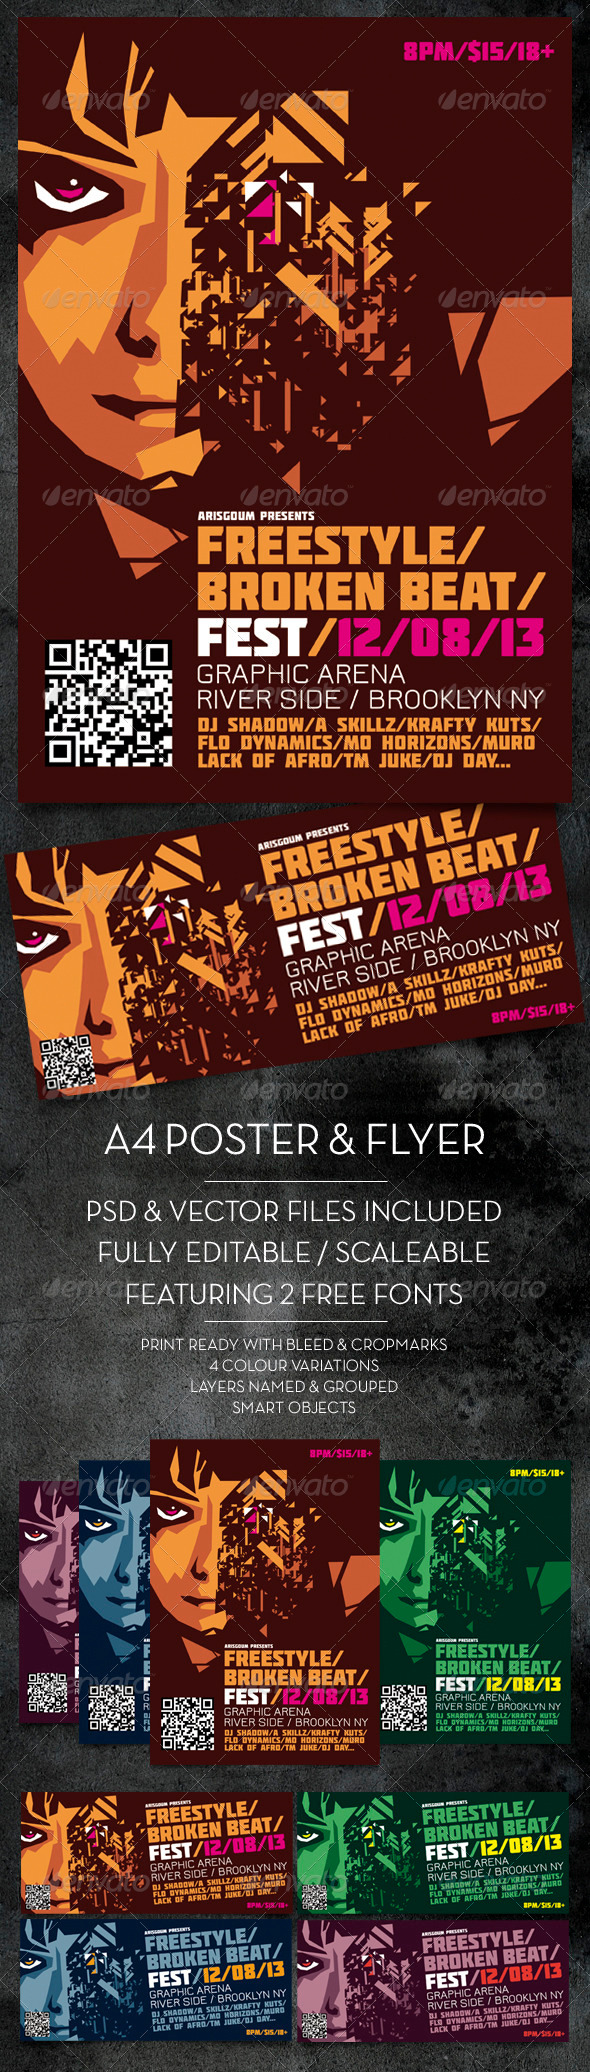 GraphicRiver Freestyle Poster & Flyer 3908672